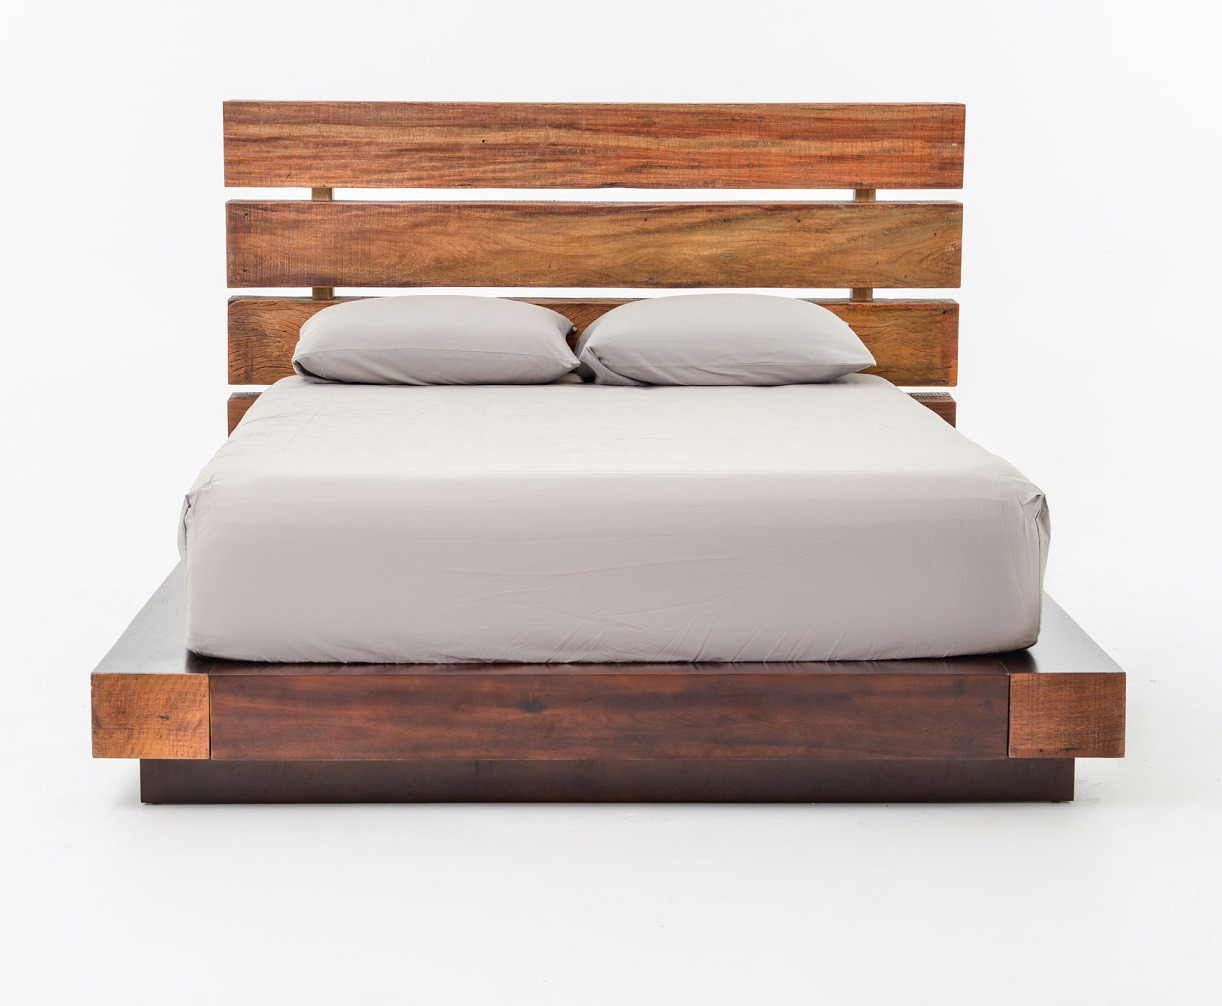 Bina Iggy King Platform Bed Reclaimed Wood Platform Bed